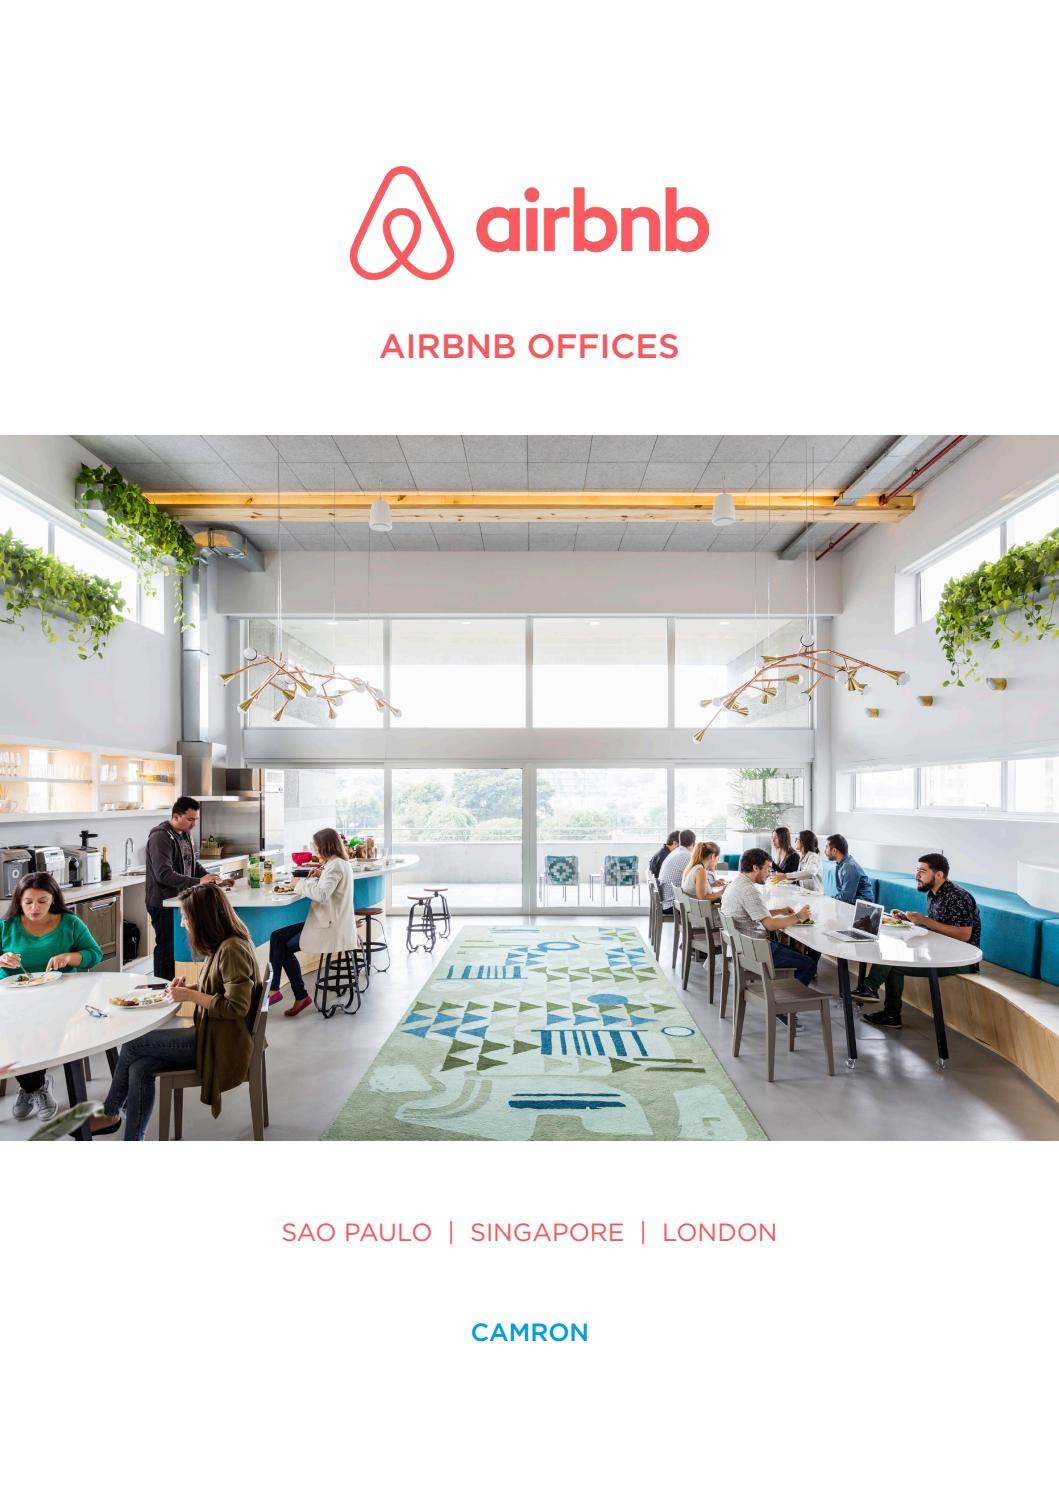 airbnb offices sao paolo singapore london by camron pr issuu airbnb office london threefold